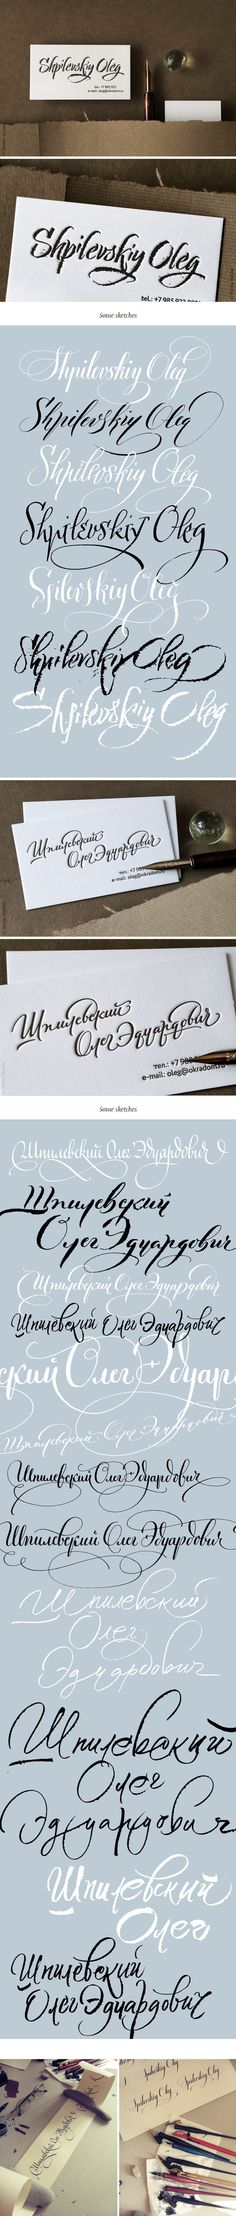 Calligraphy for business cards by Marina Marjina, via Behance